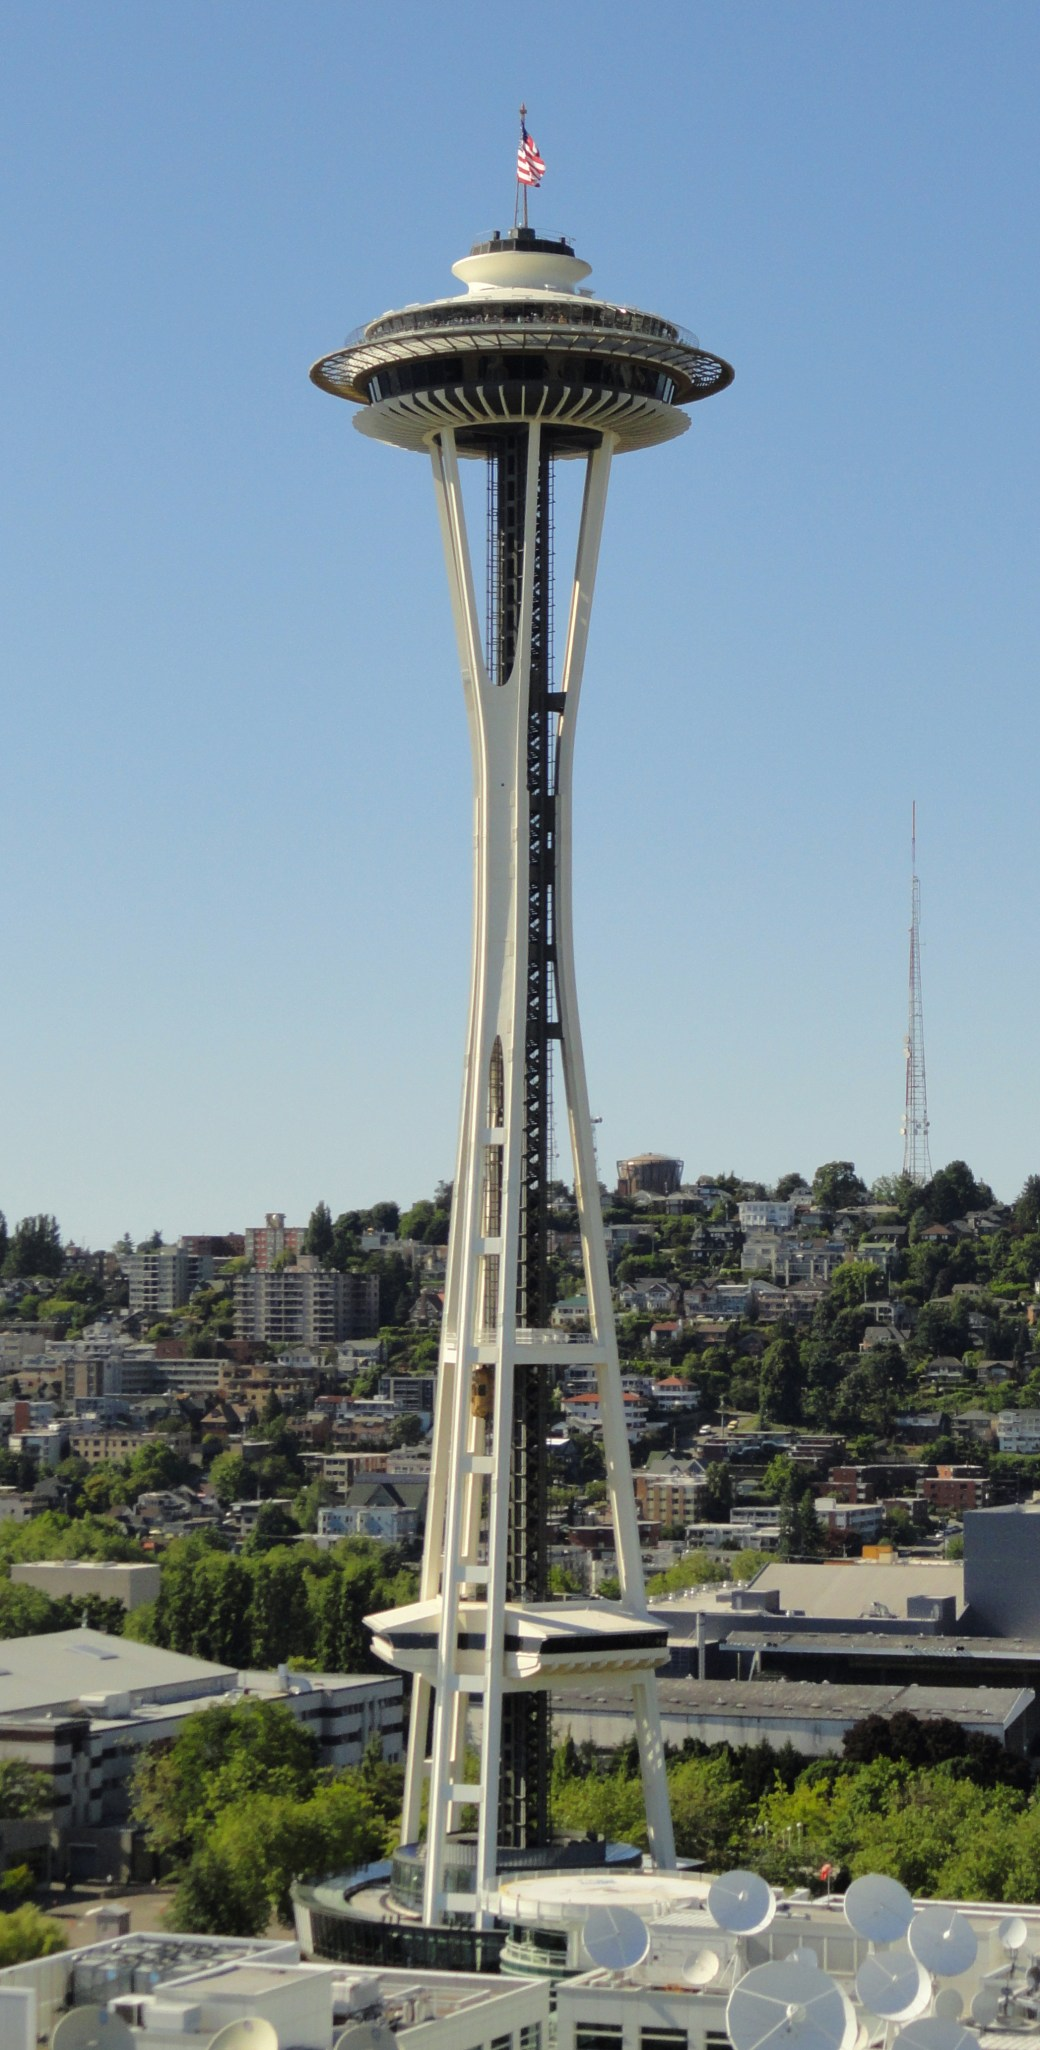 A Contemporary Picture (2003) of the Space Needle.